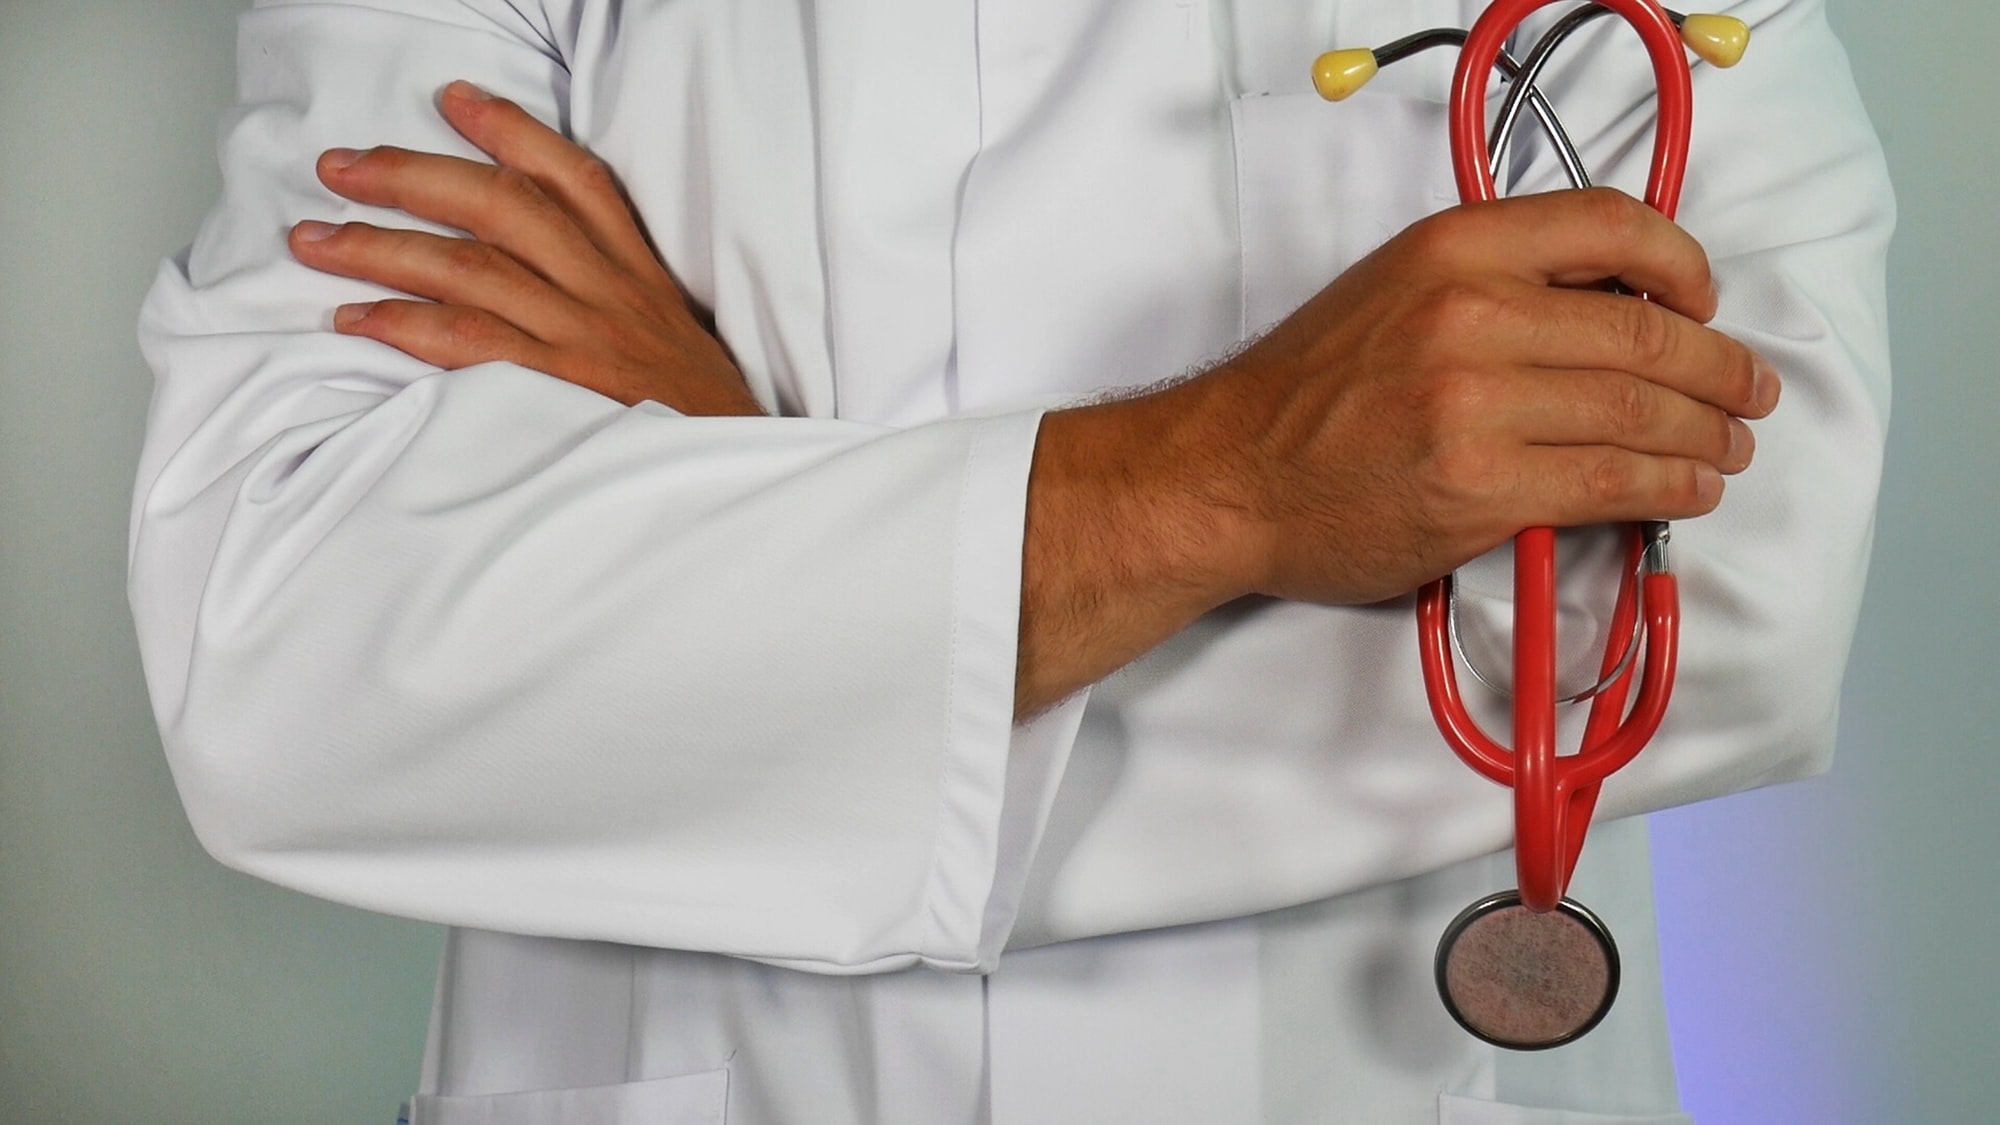 Privilege to visit a doctor